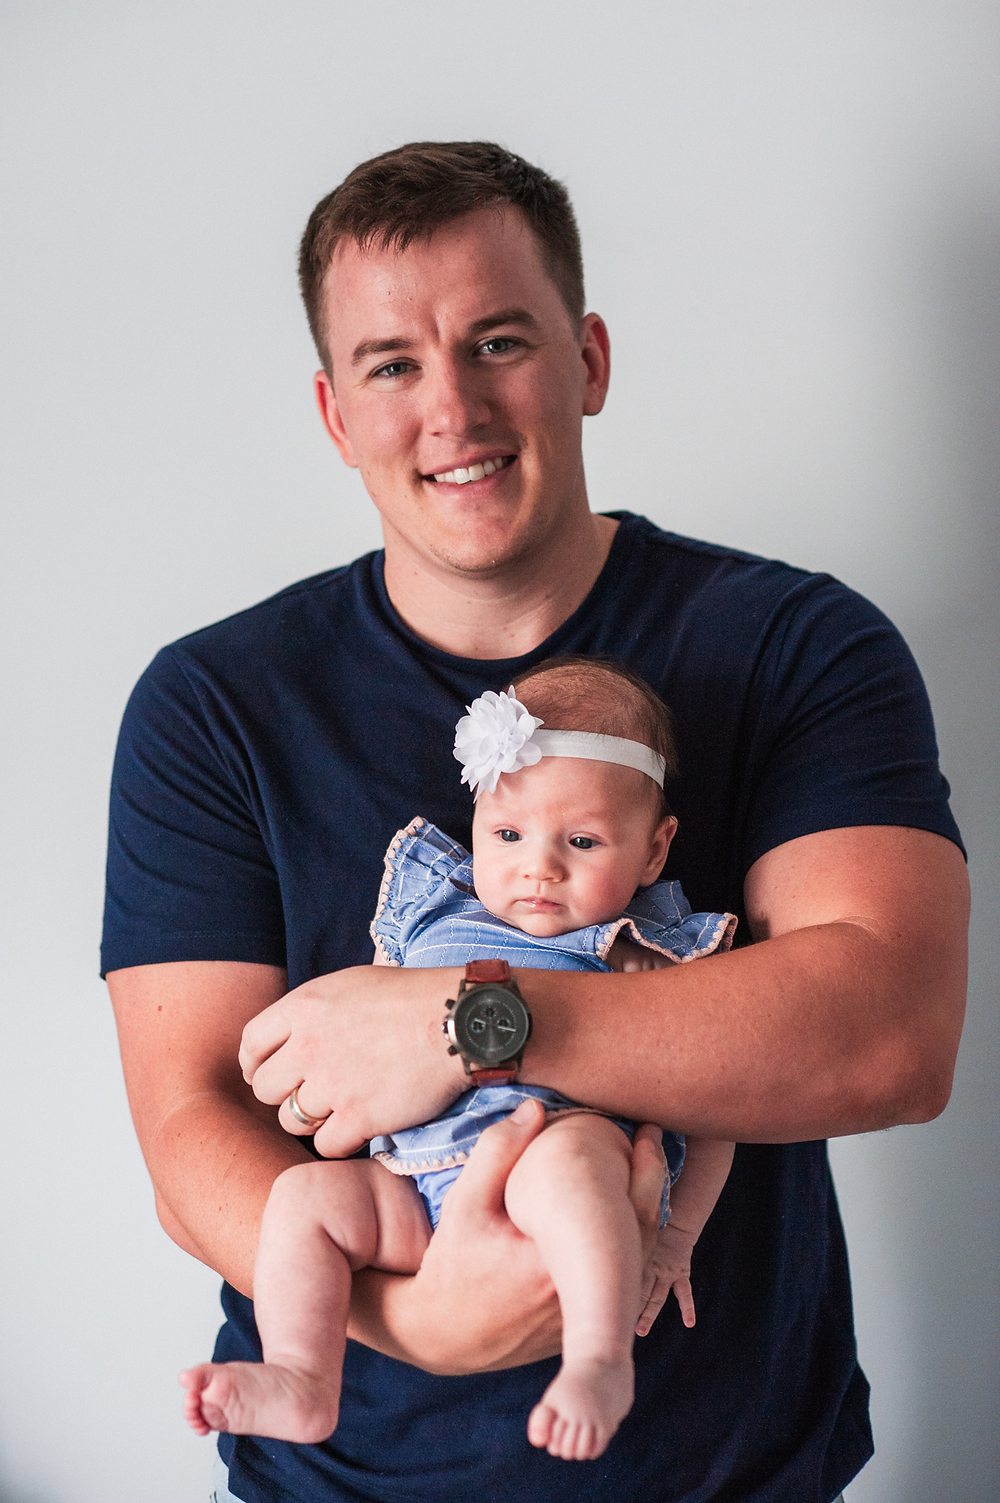 newborn photography at home in jacksonville fl